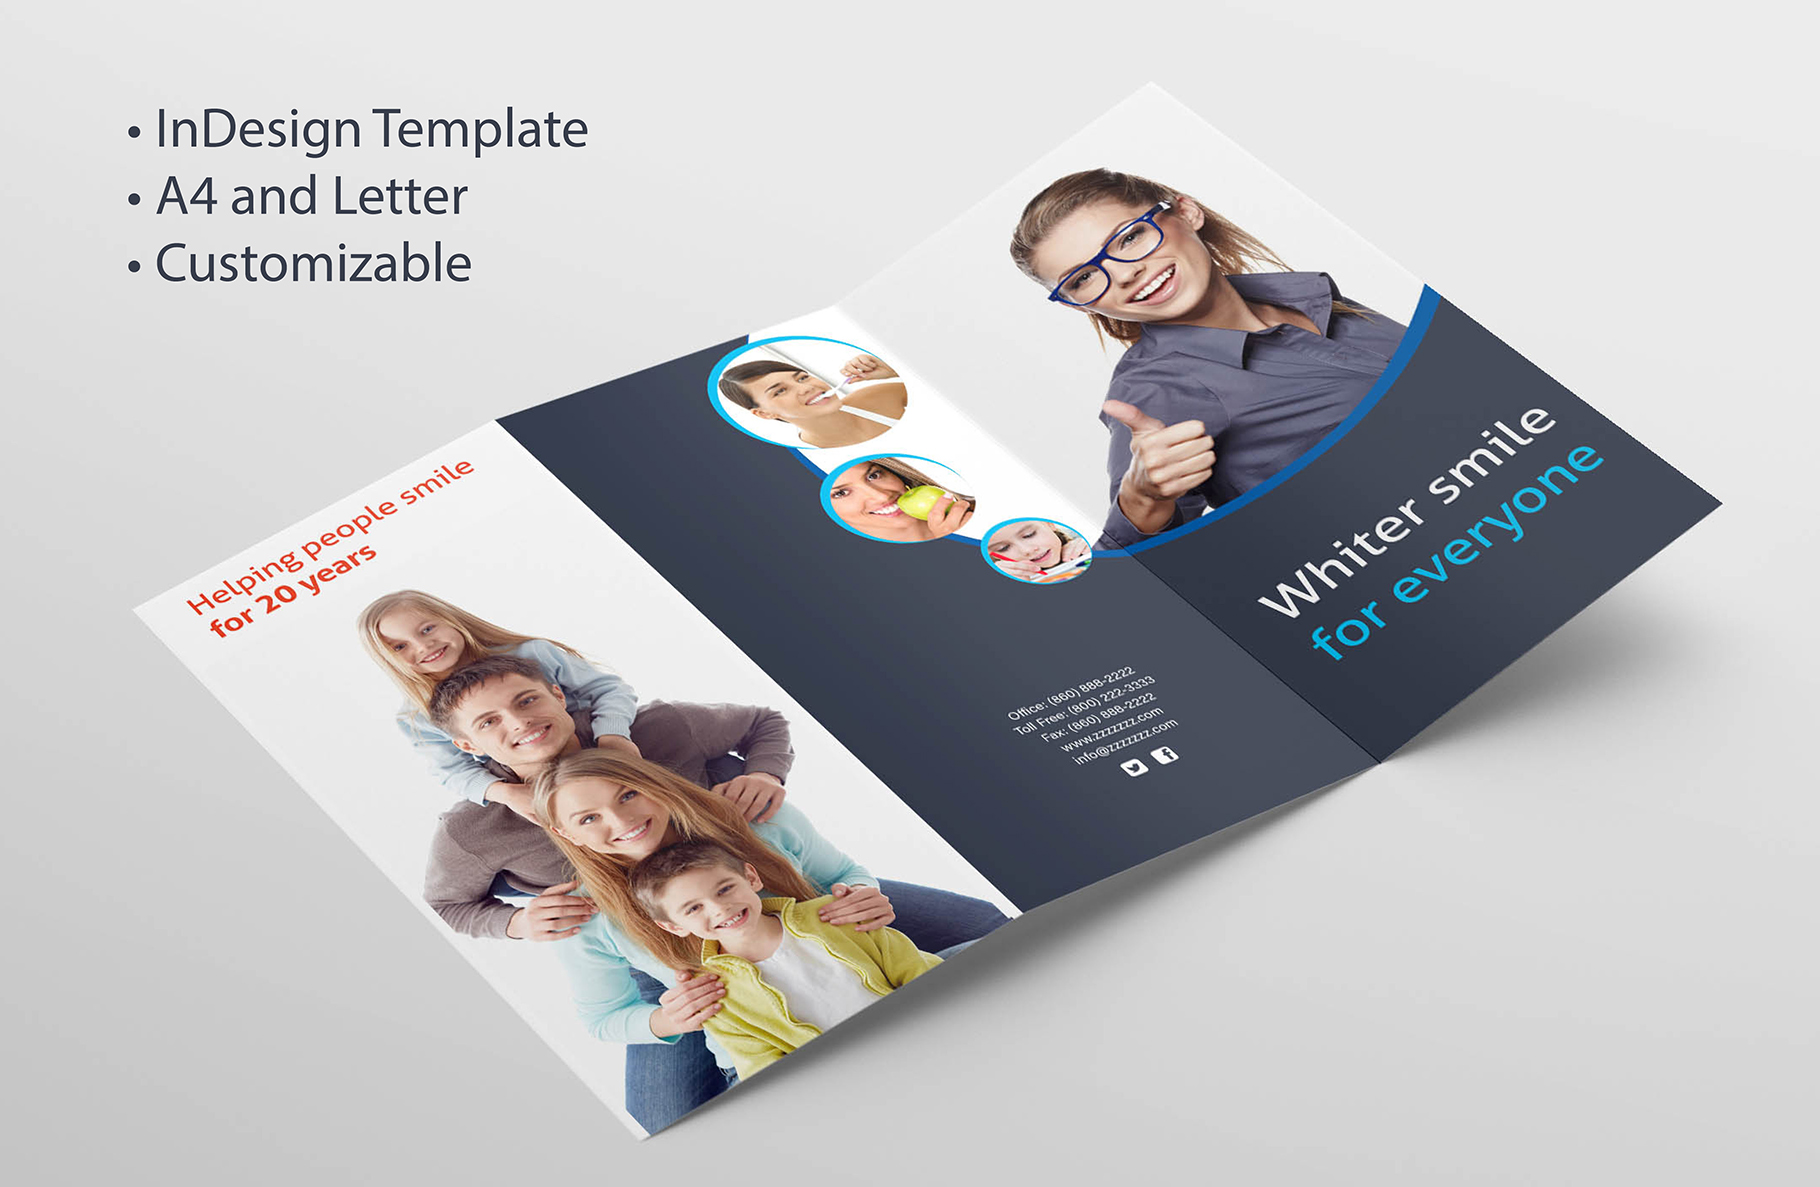 brochure templates for indesign - adobe indesign tri fold brochure template graphic by